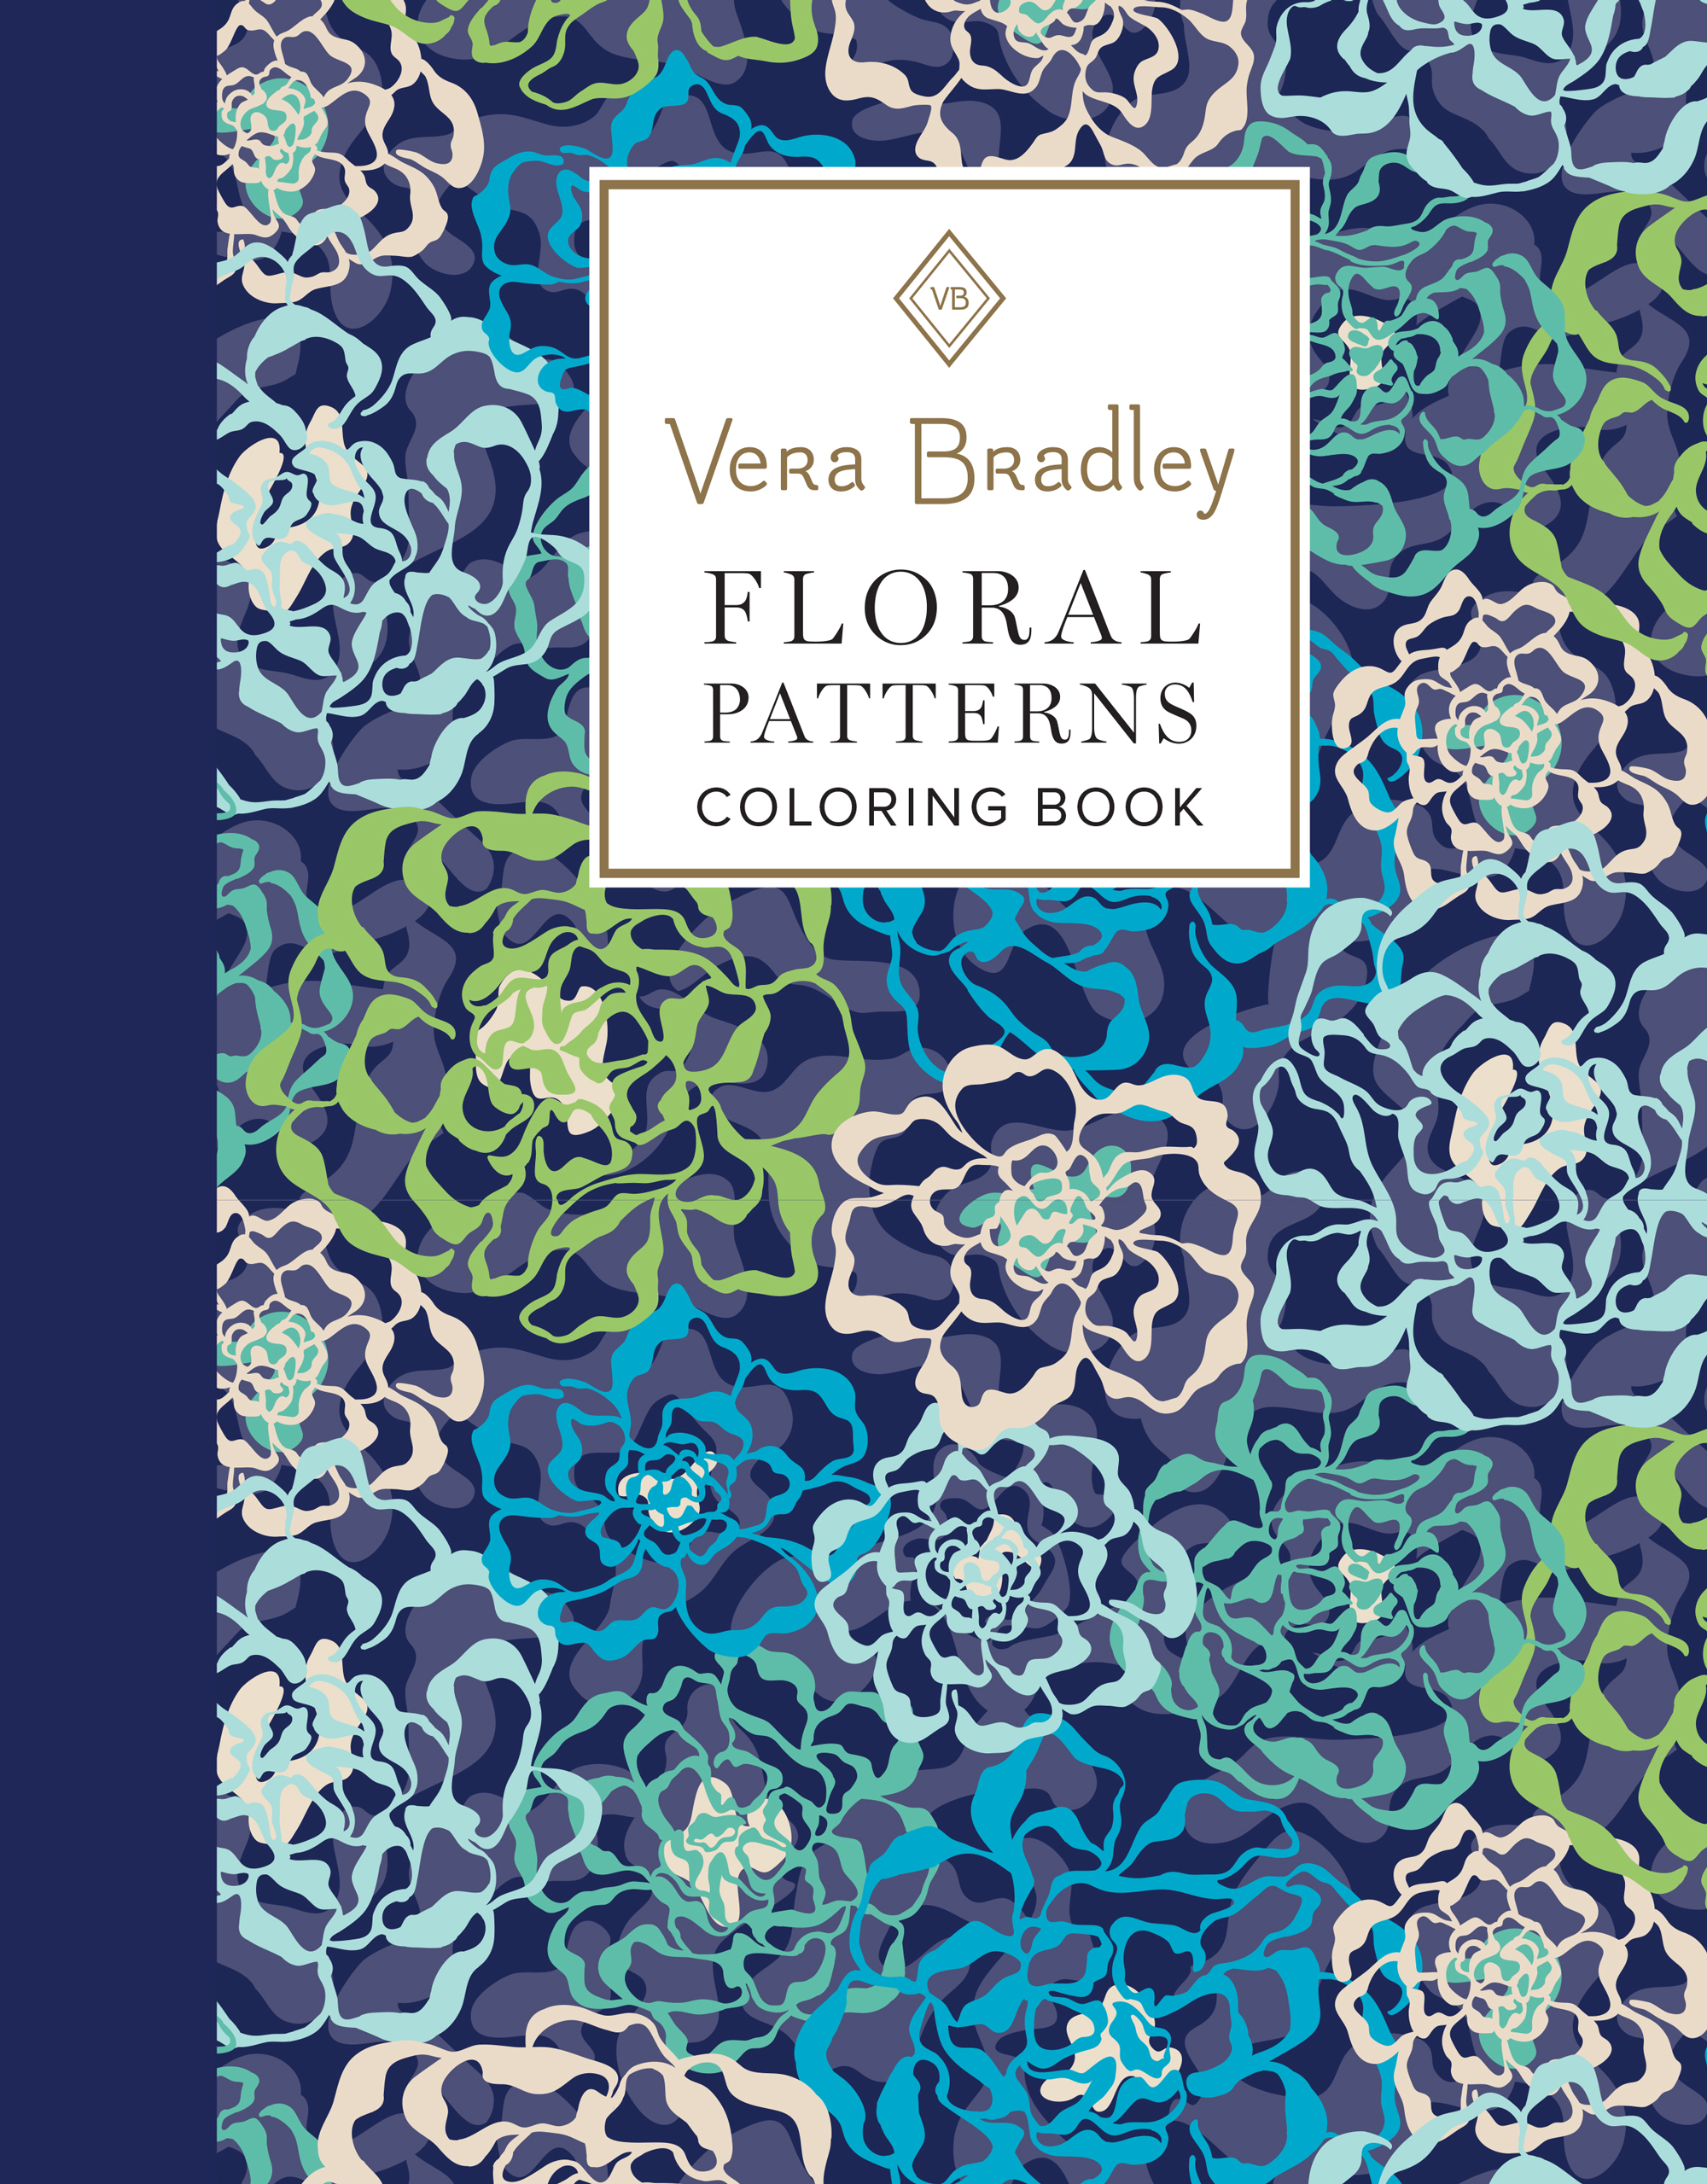 Vera Bradley Floral Patterns Coloring BookCreate Something Beautiful Every Day With Authentic Designs In This Inspiring Book